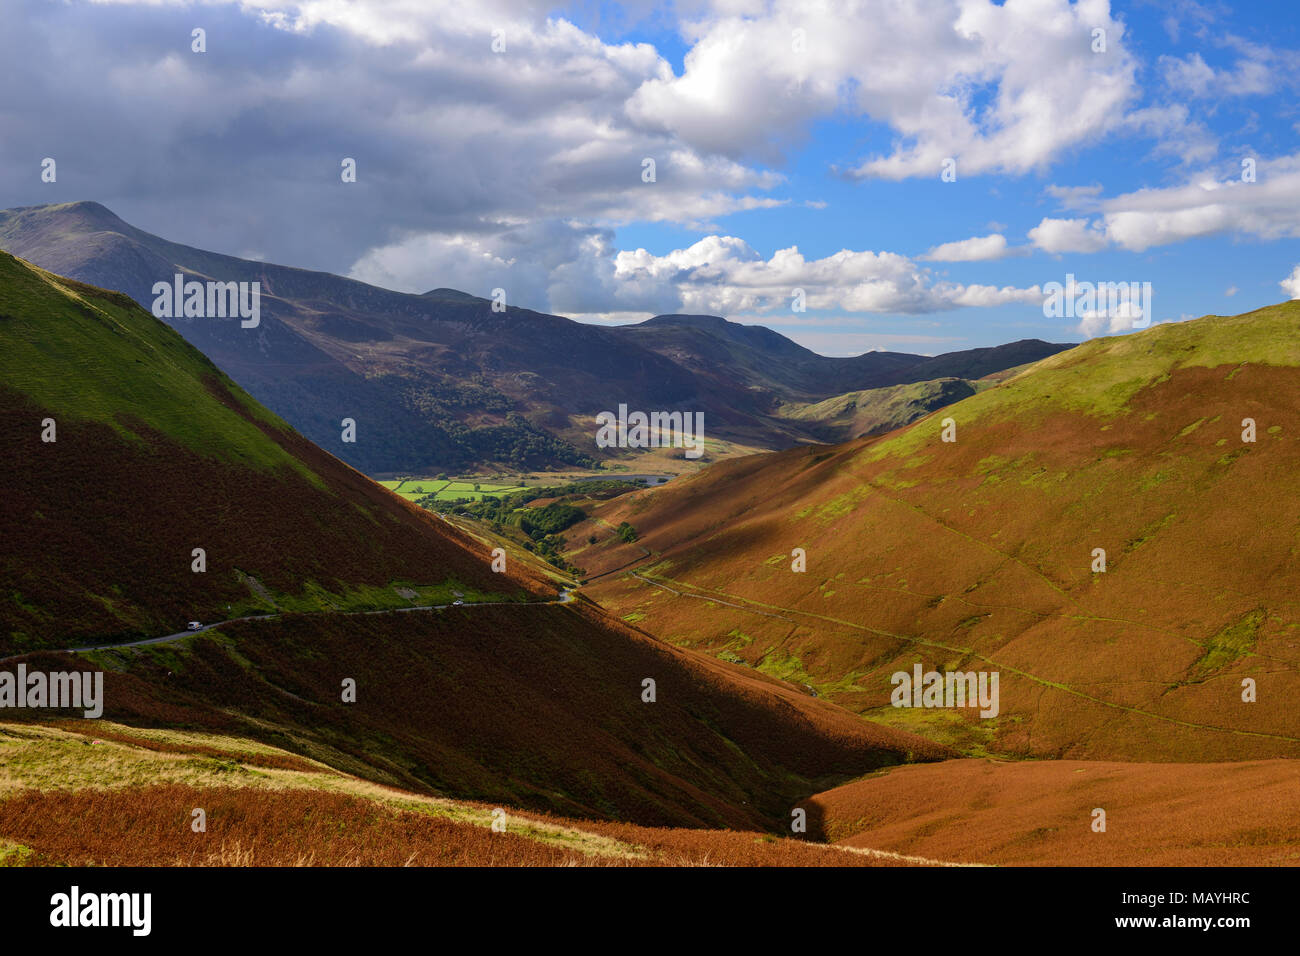 View from Newlands Pass along unclassified road in Buttermere Valley leading to Buttermere in the Lake District National Park in Cumbria, England Stock Photo